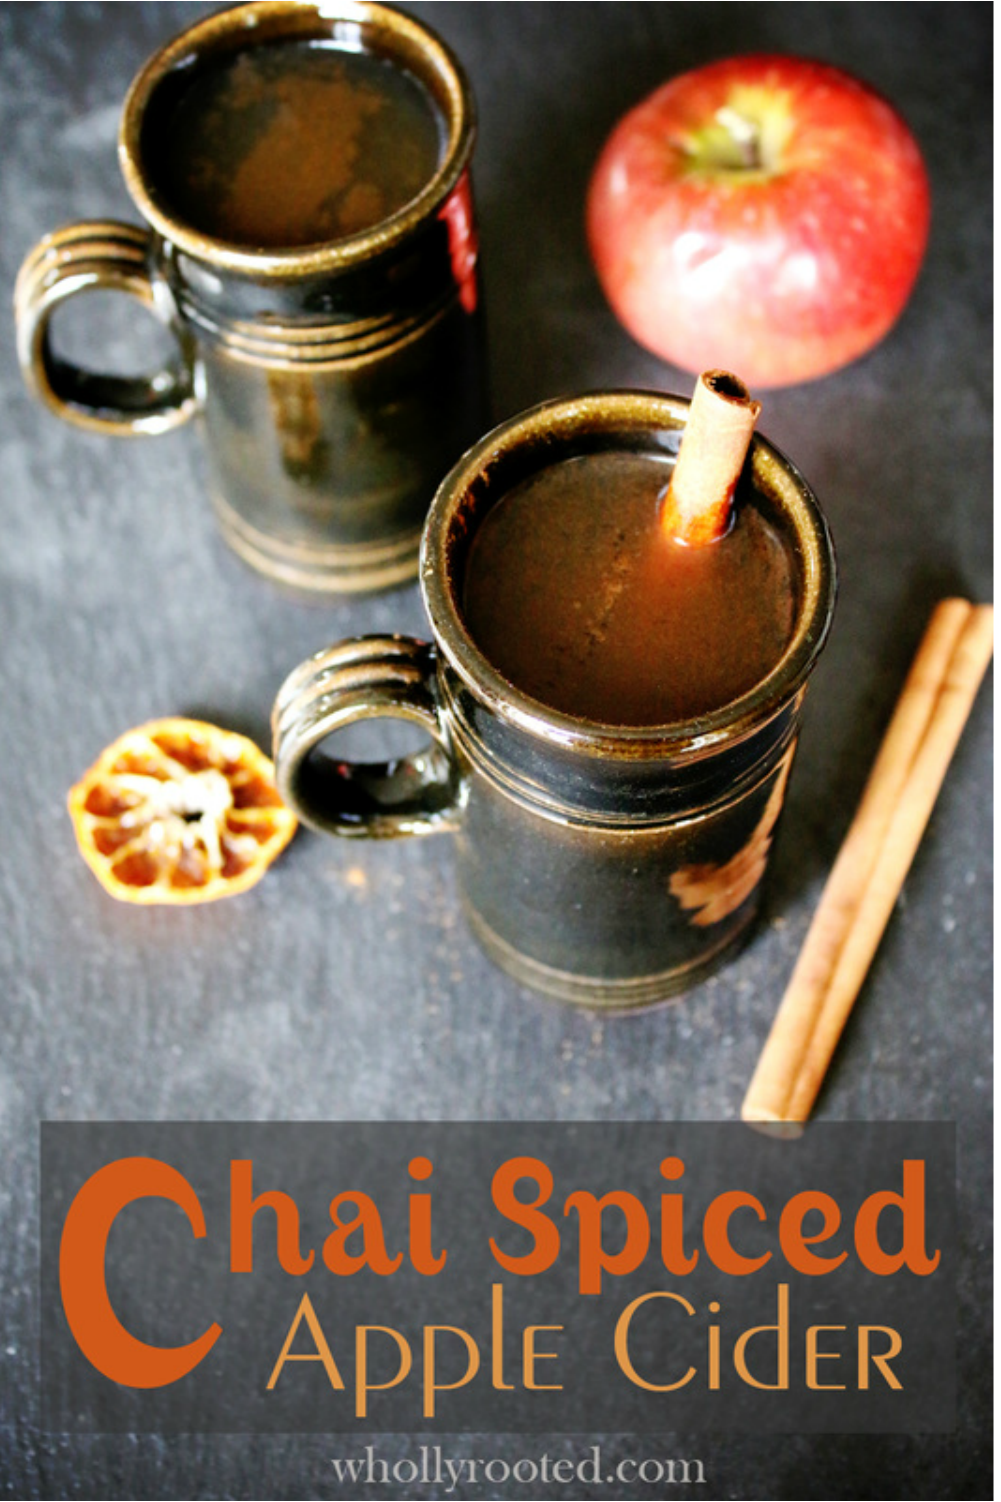 Chai Spiced Apple Cider @ Wholly Rooted